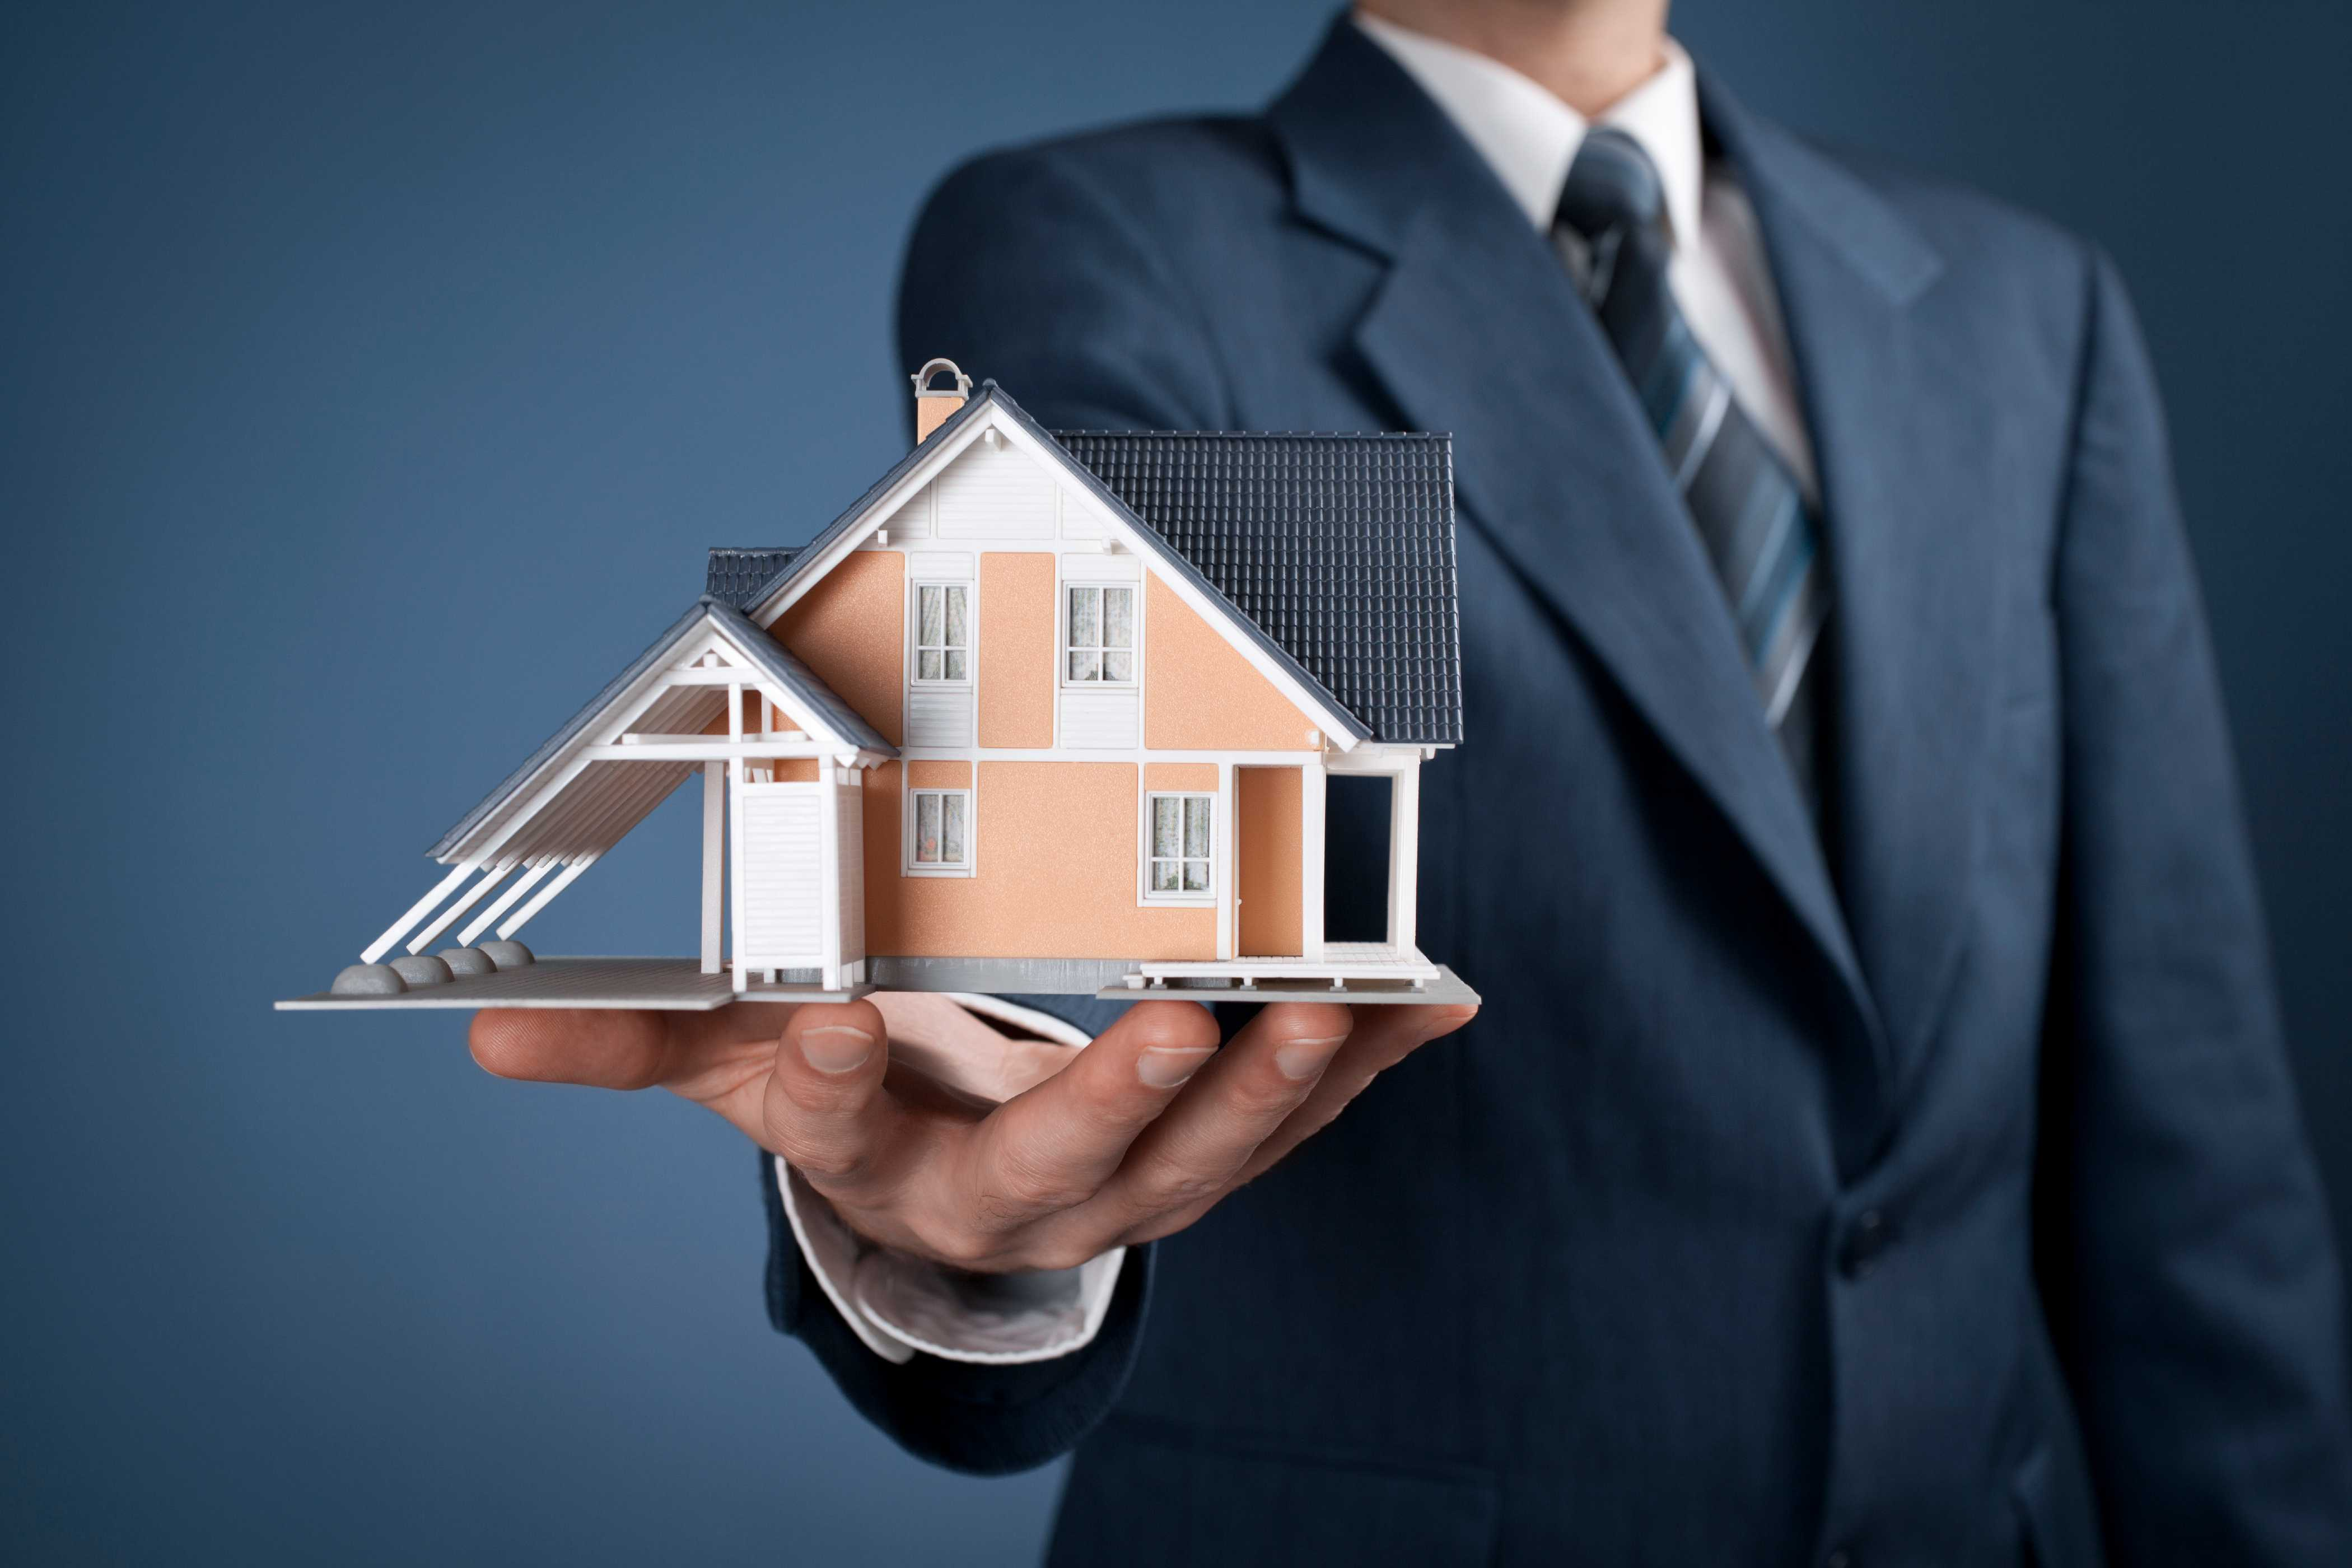 Home Contents Insurance - Understanding What Is Covered and What Is Not